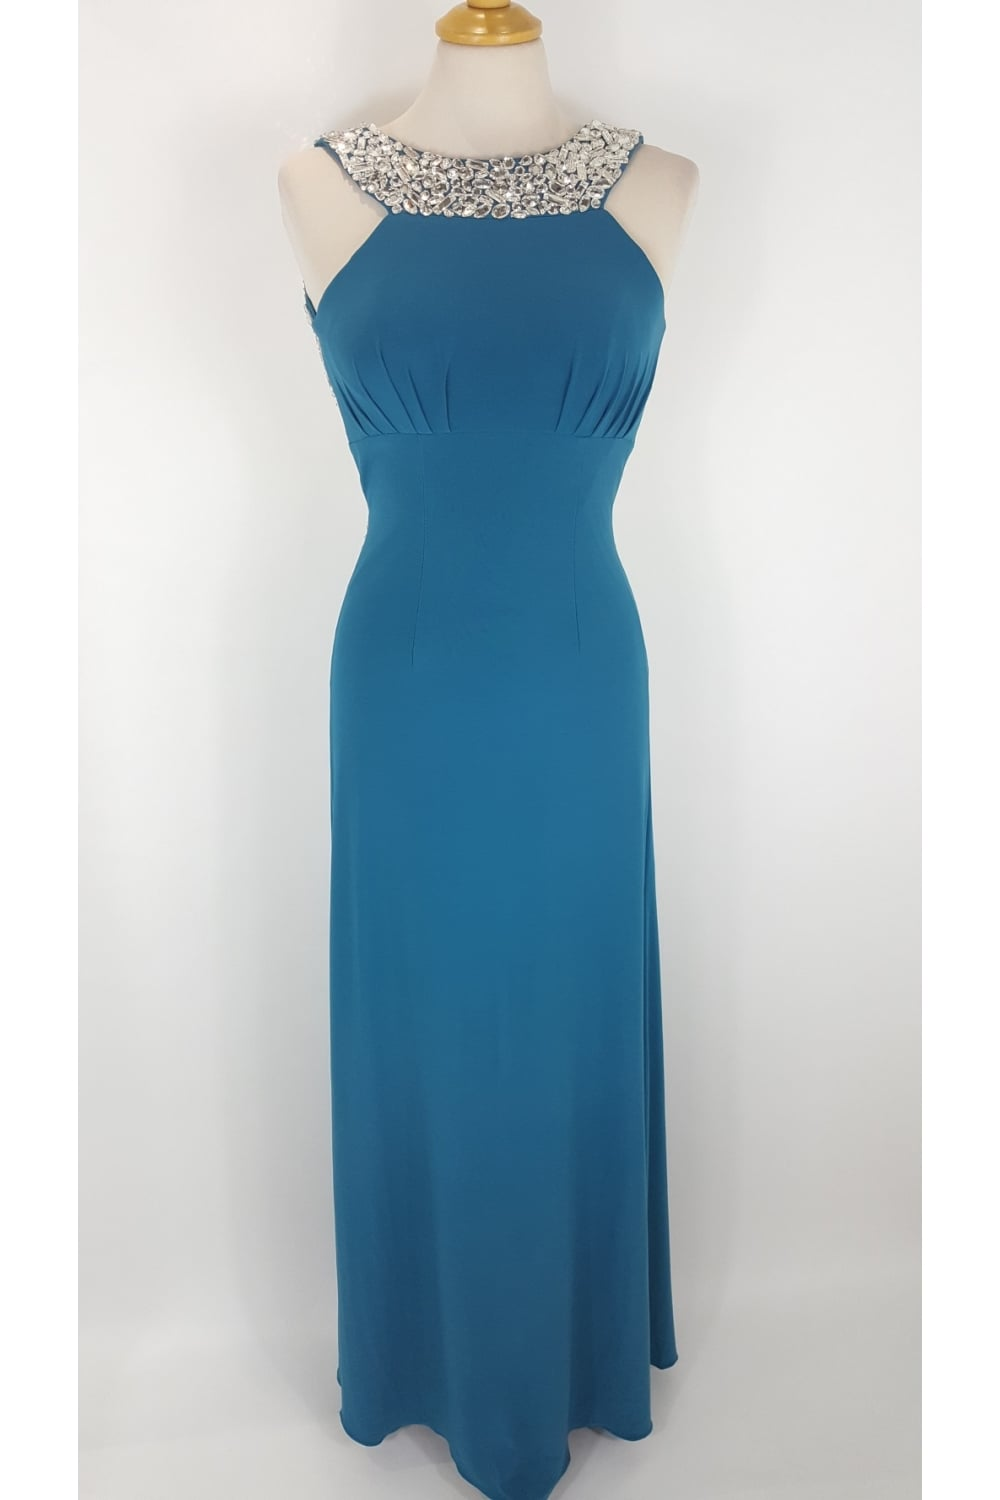 Tiffany Illusion Prom Chicago Teal Evening Dress